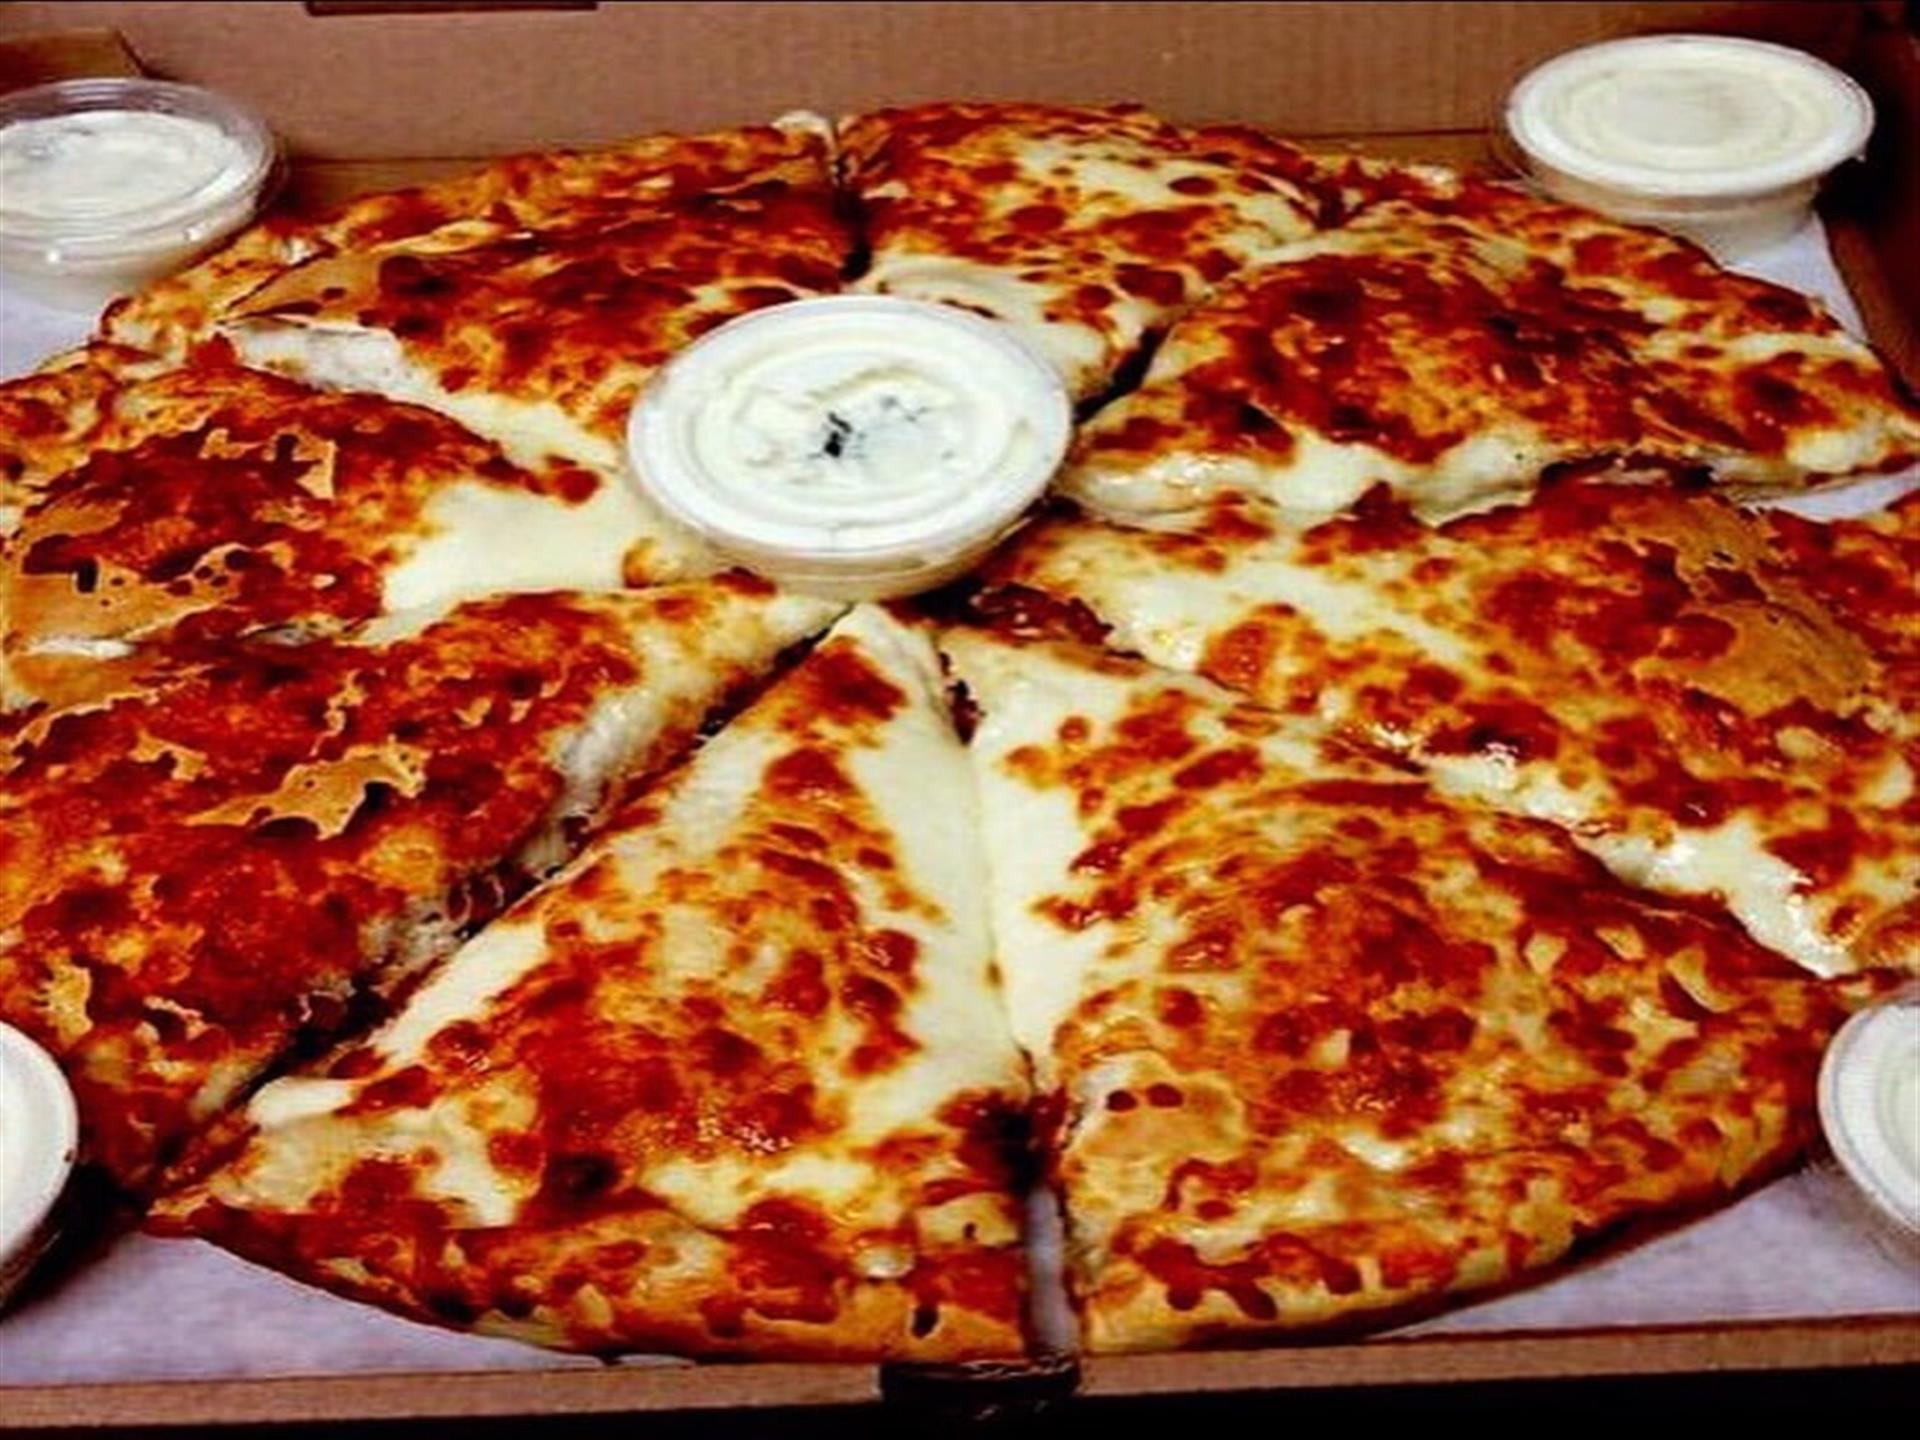 Pizza pie in pizza box with ranch dressing on the side